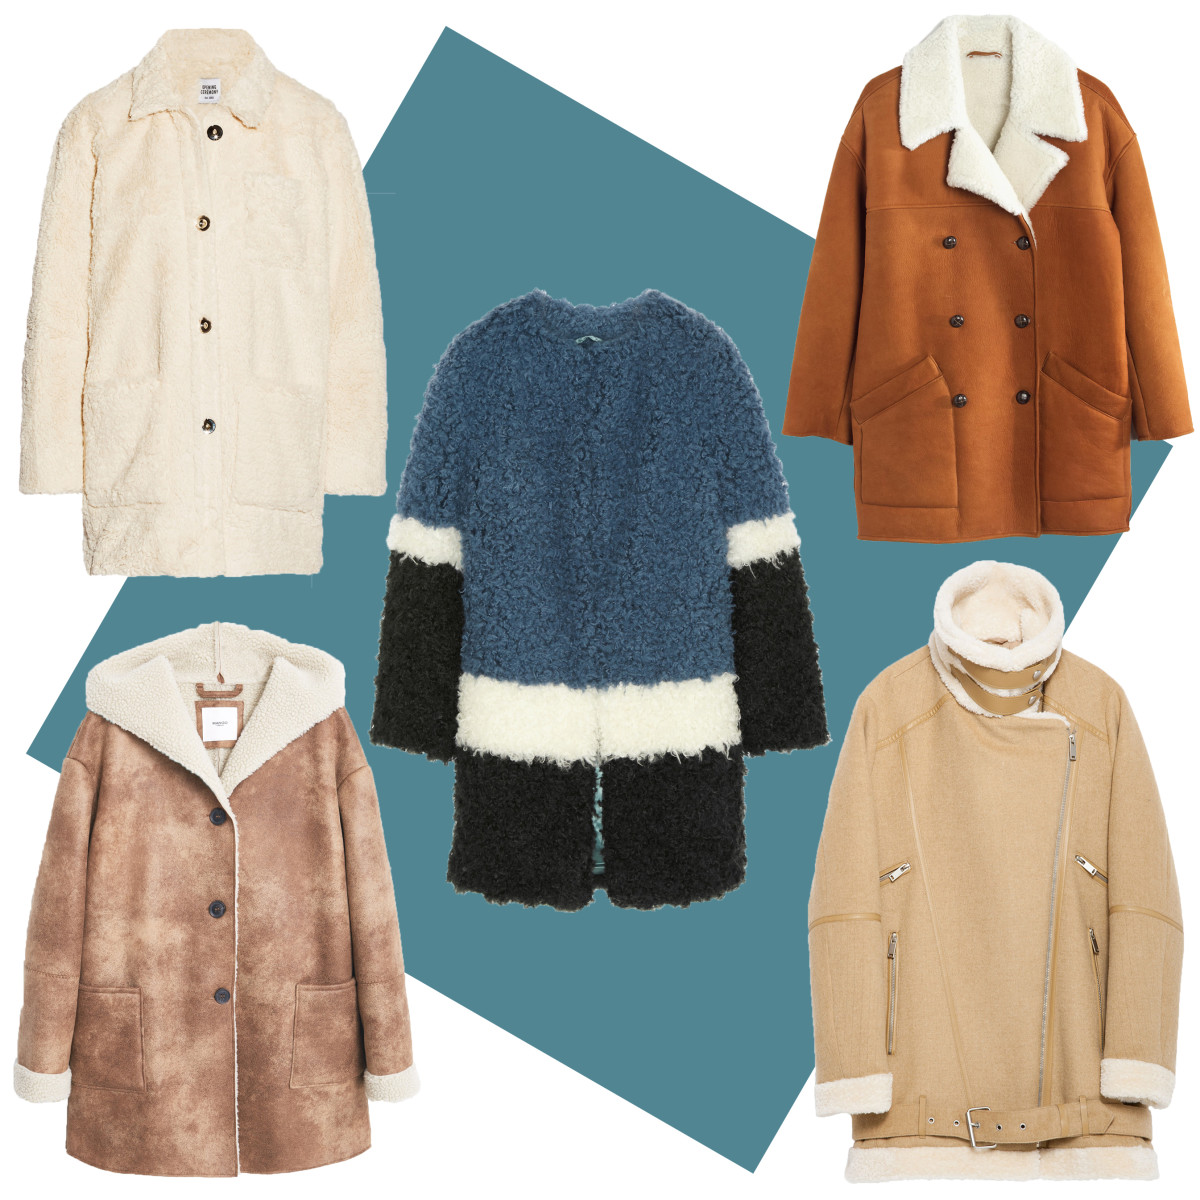 TOP LEFT: Opening Ceremony faux shearling coat, $645, available at Net-a-Porter; CENTER: Shrimps color-block faux shearling coat, $795, available at Net-a-Porter; TOP RIGHT: Madewell real shearling coat, $998, available at Madewell; BOTTOM LEFT: Mango faux shearling coat, $119.99, available at Mango; BOTTOM RIGHT: Zara oversized fleece jacket, $189, available at Zara.